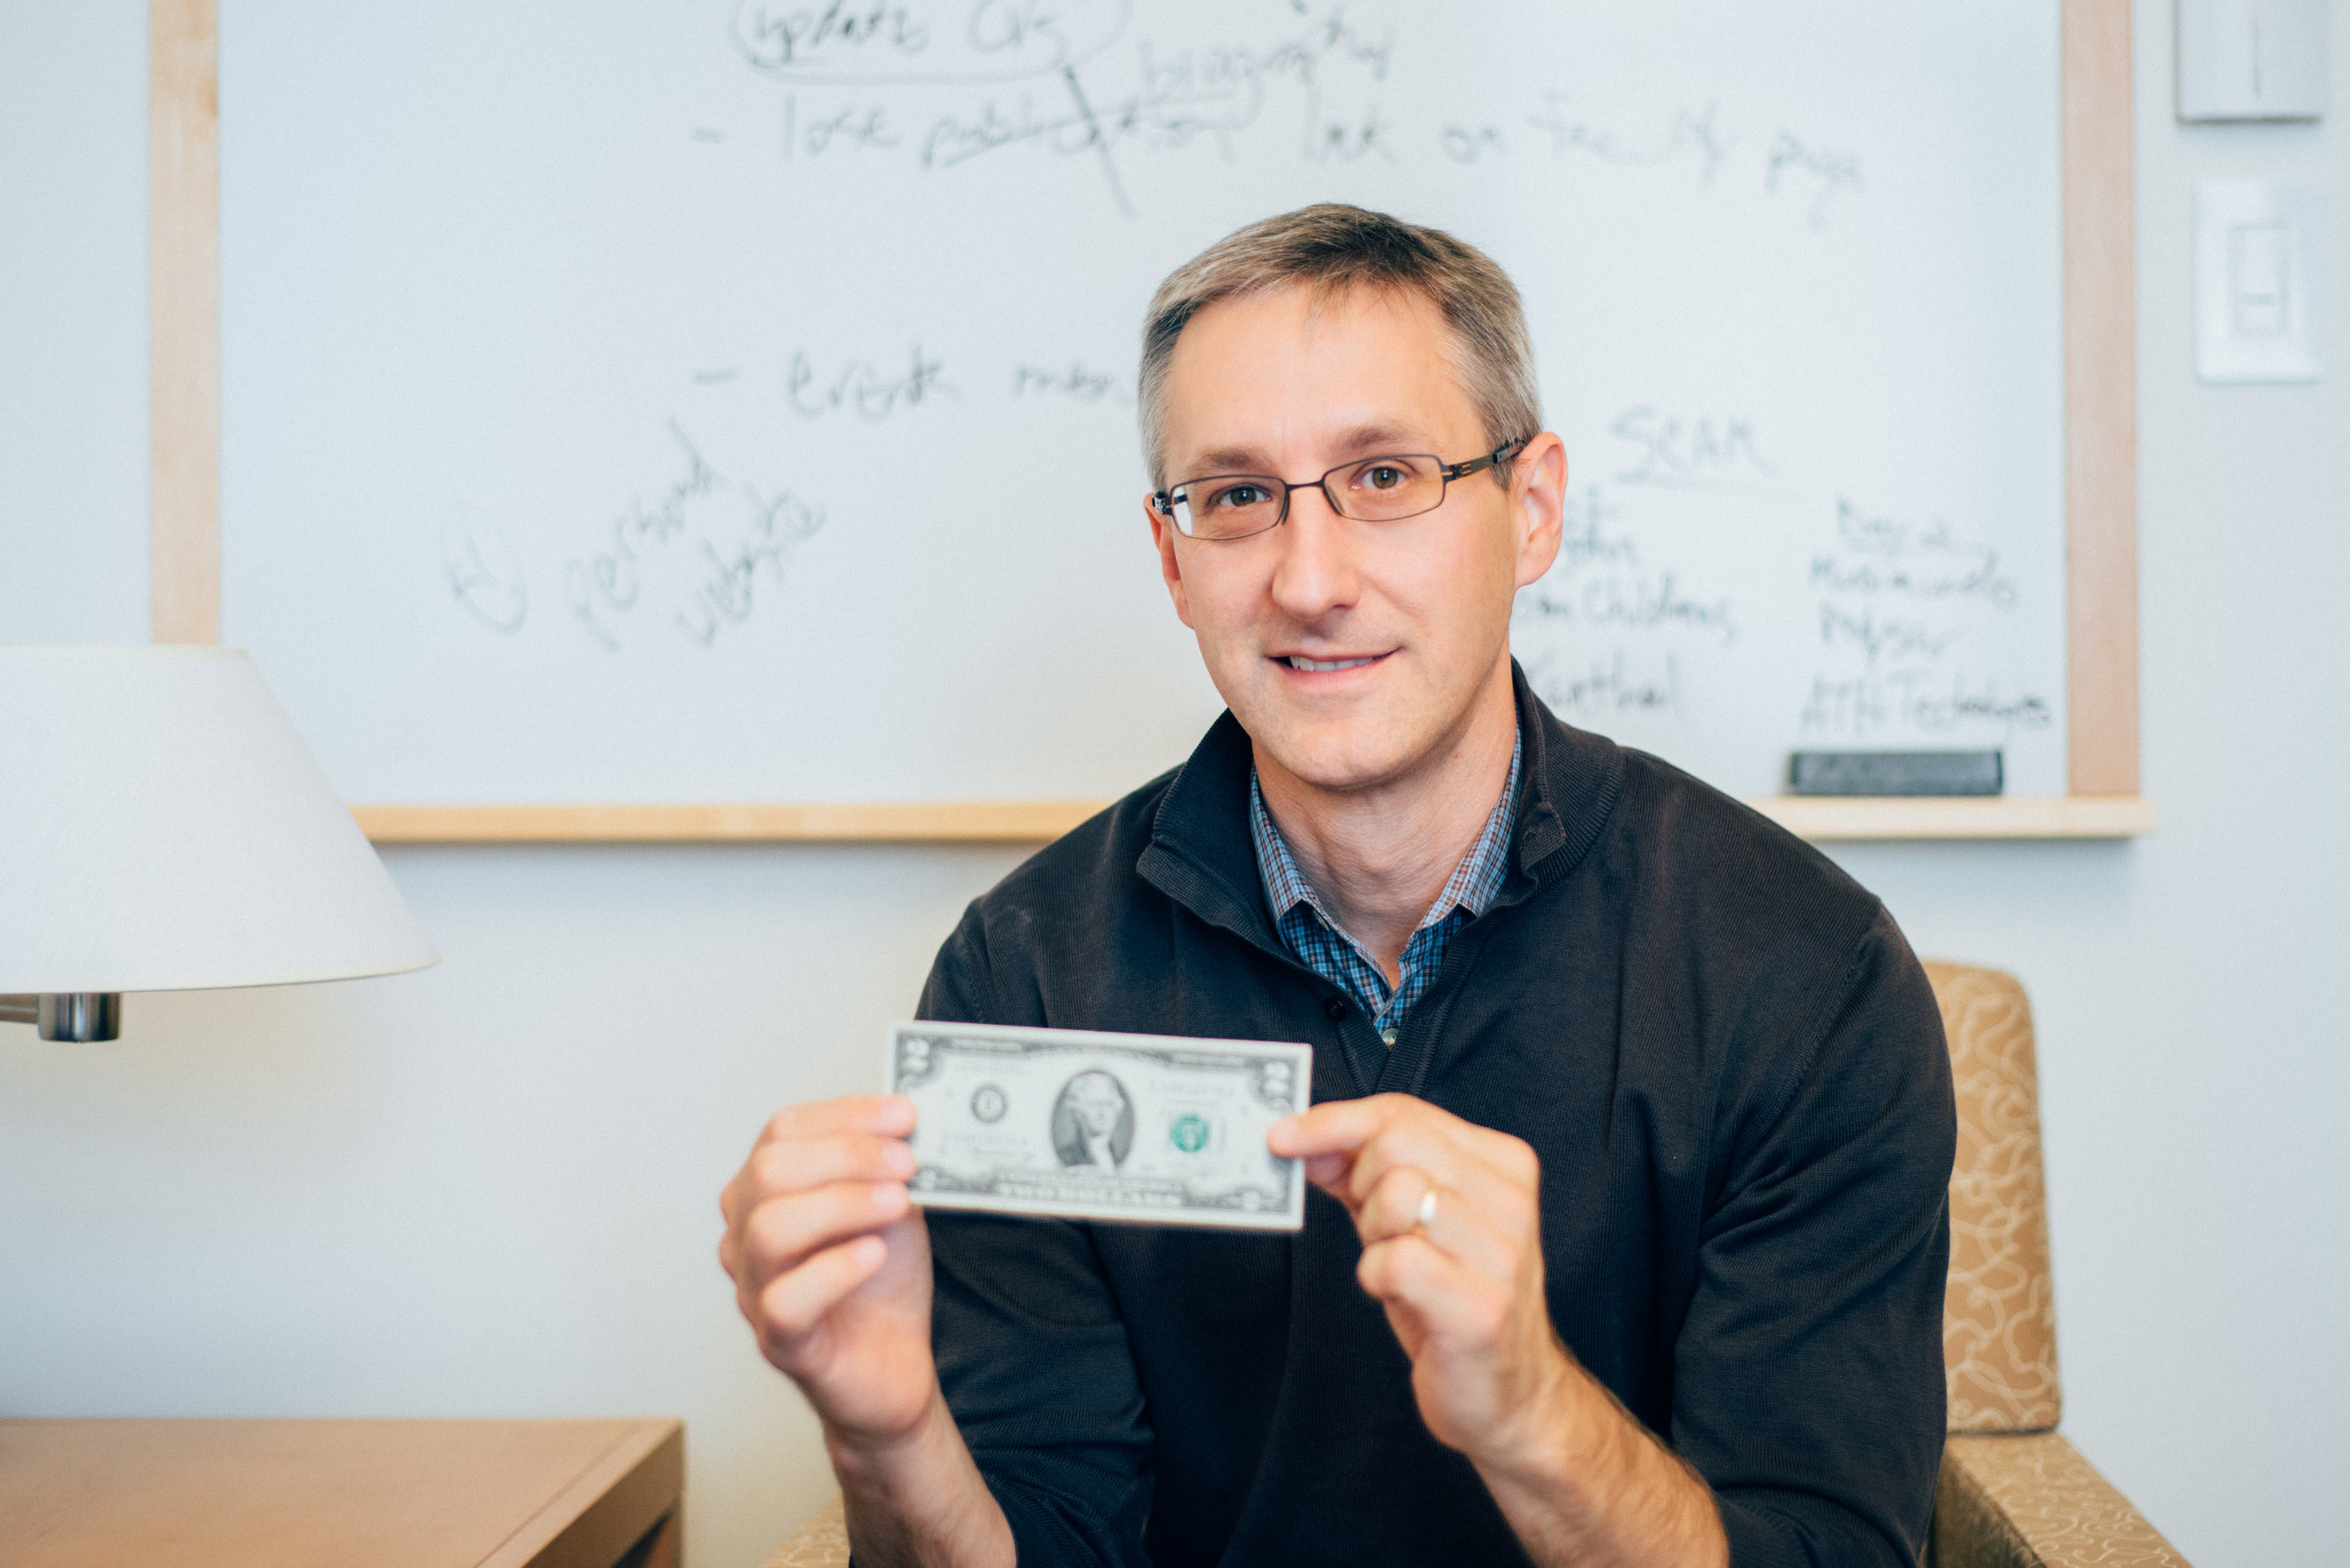 Accounting class lesson on $2 bill leads to silver screen